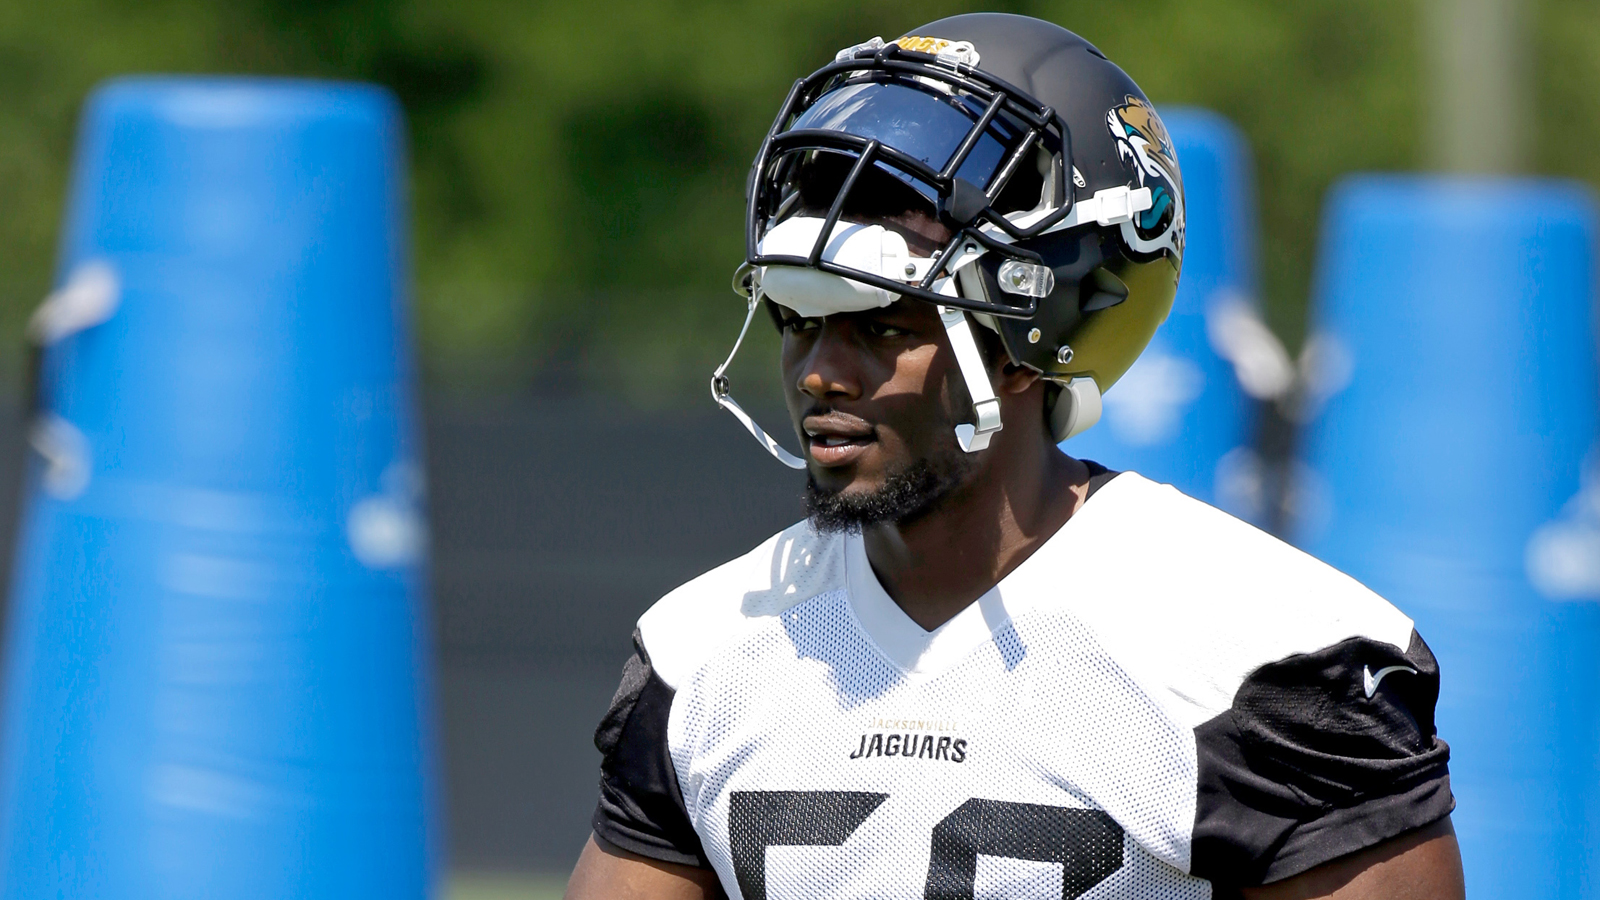 Jaguars DE Dante Fowler Jr. booted from joint practice with Bucs